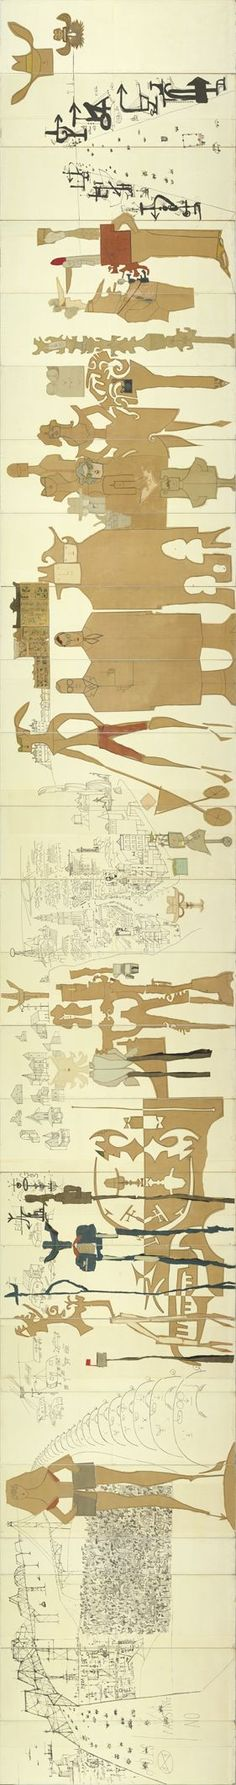 Saul Steinberg - The Americans - detail